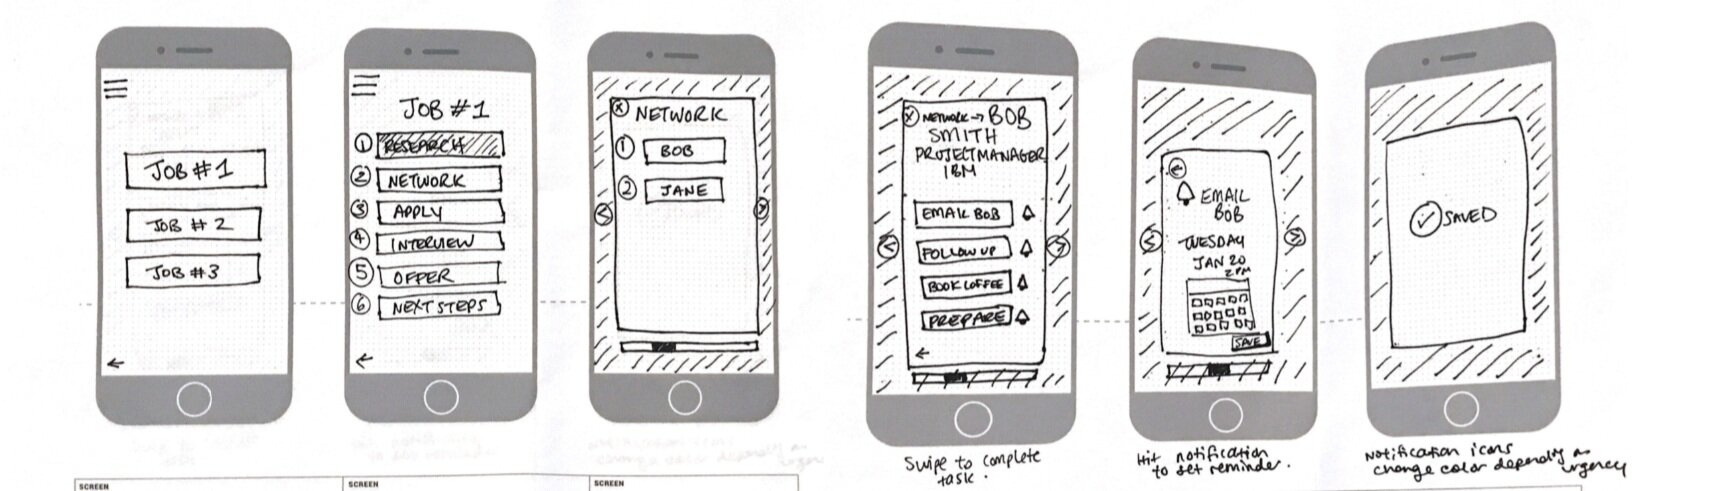 1st round of low-fi sketches showing user flow of scheduling a networking appointment